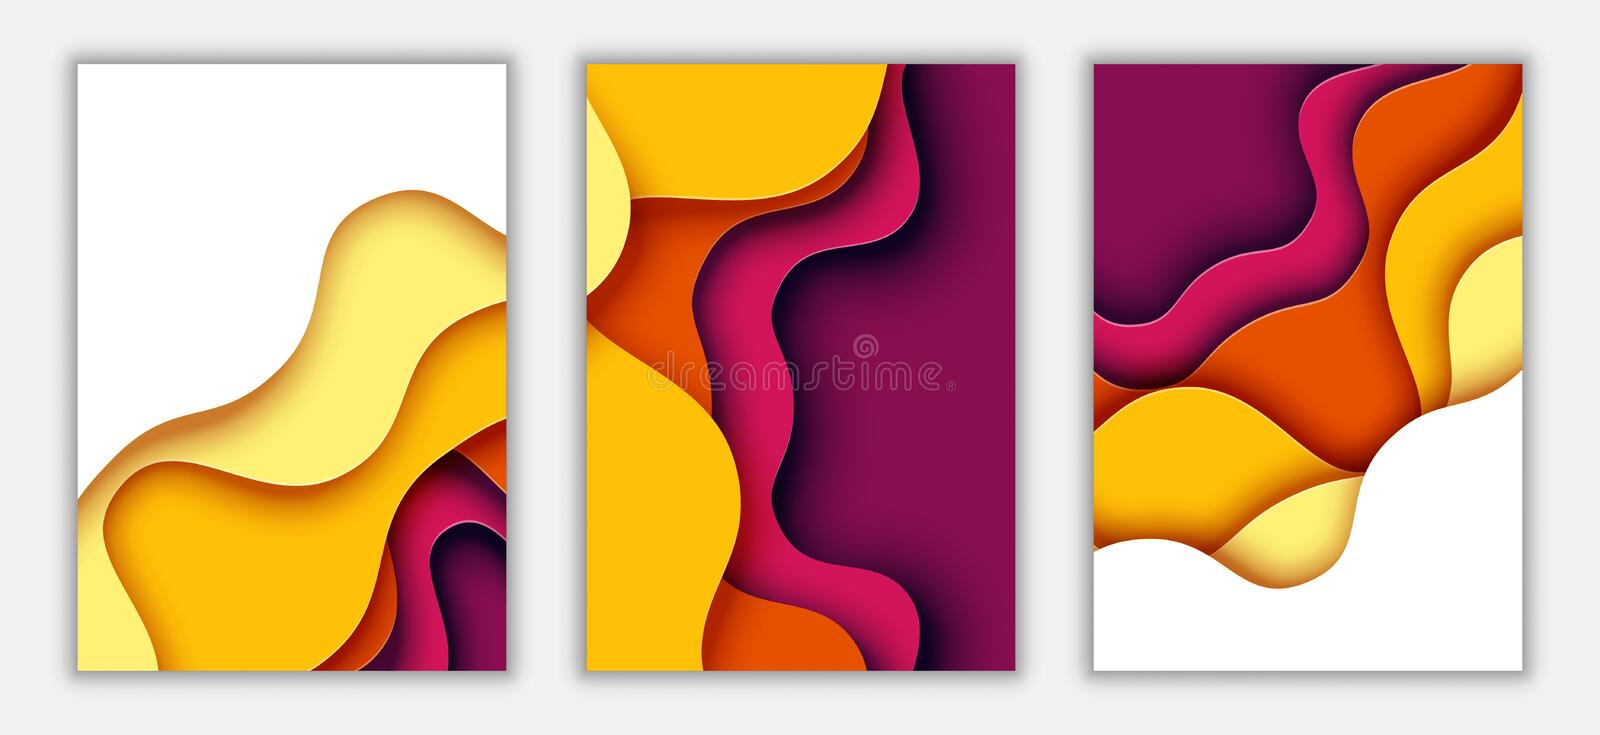 Vertical A4 paper cut banner template abstract background vector illustration